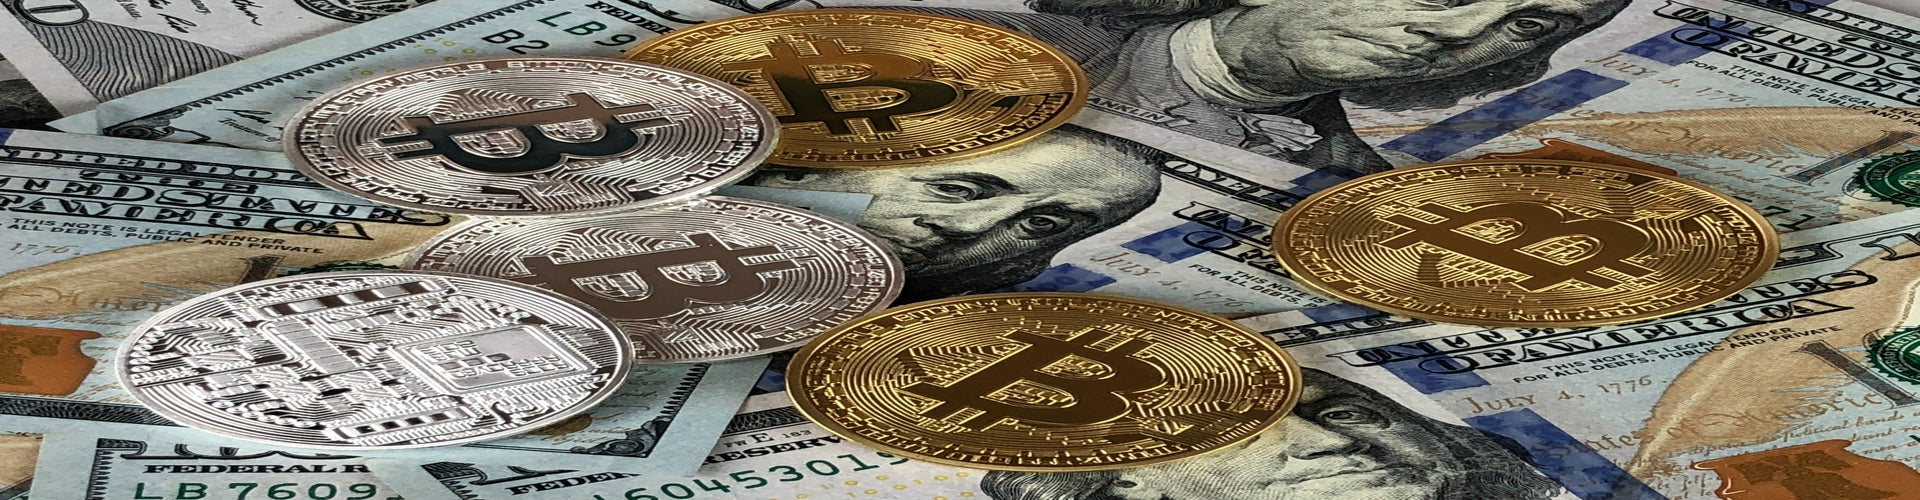 Forking crypto currency investments sports betting cons